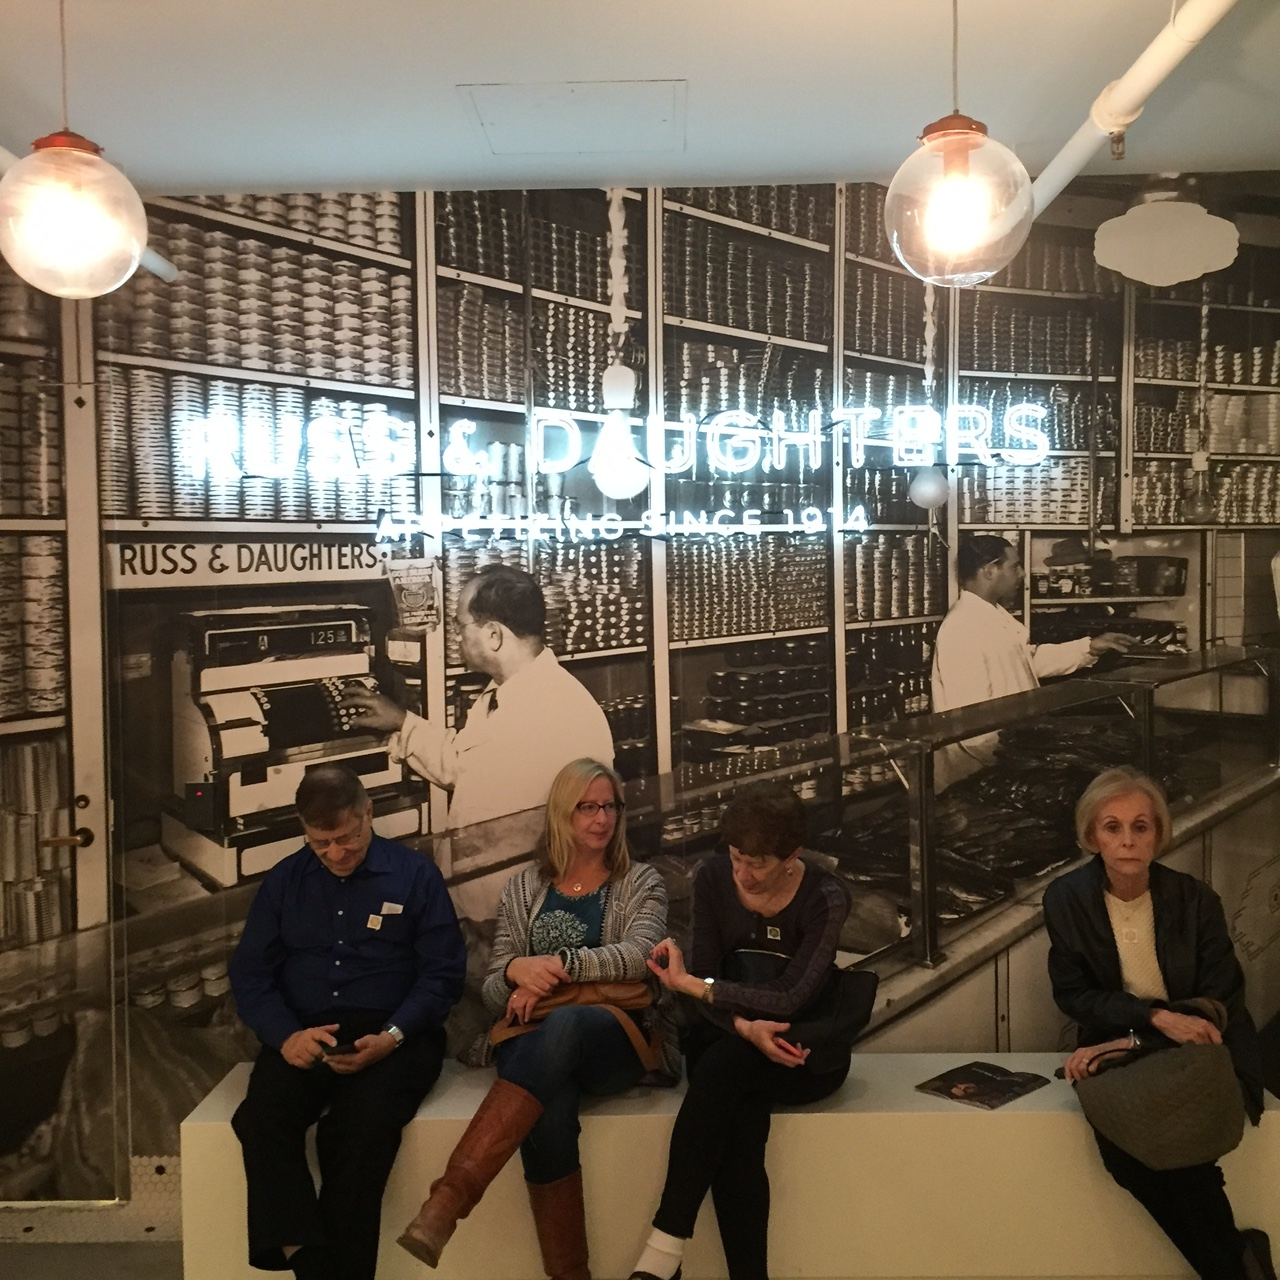 Russ & Daughters in the Jewish Museum